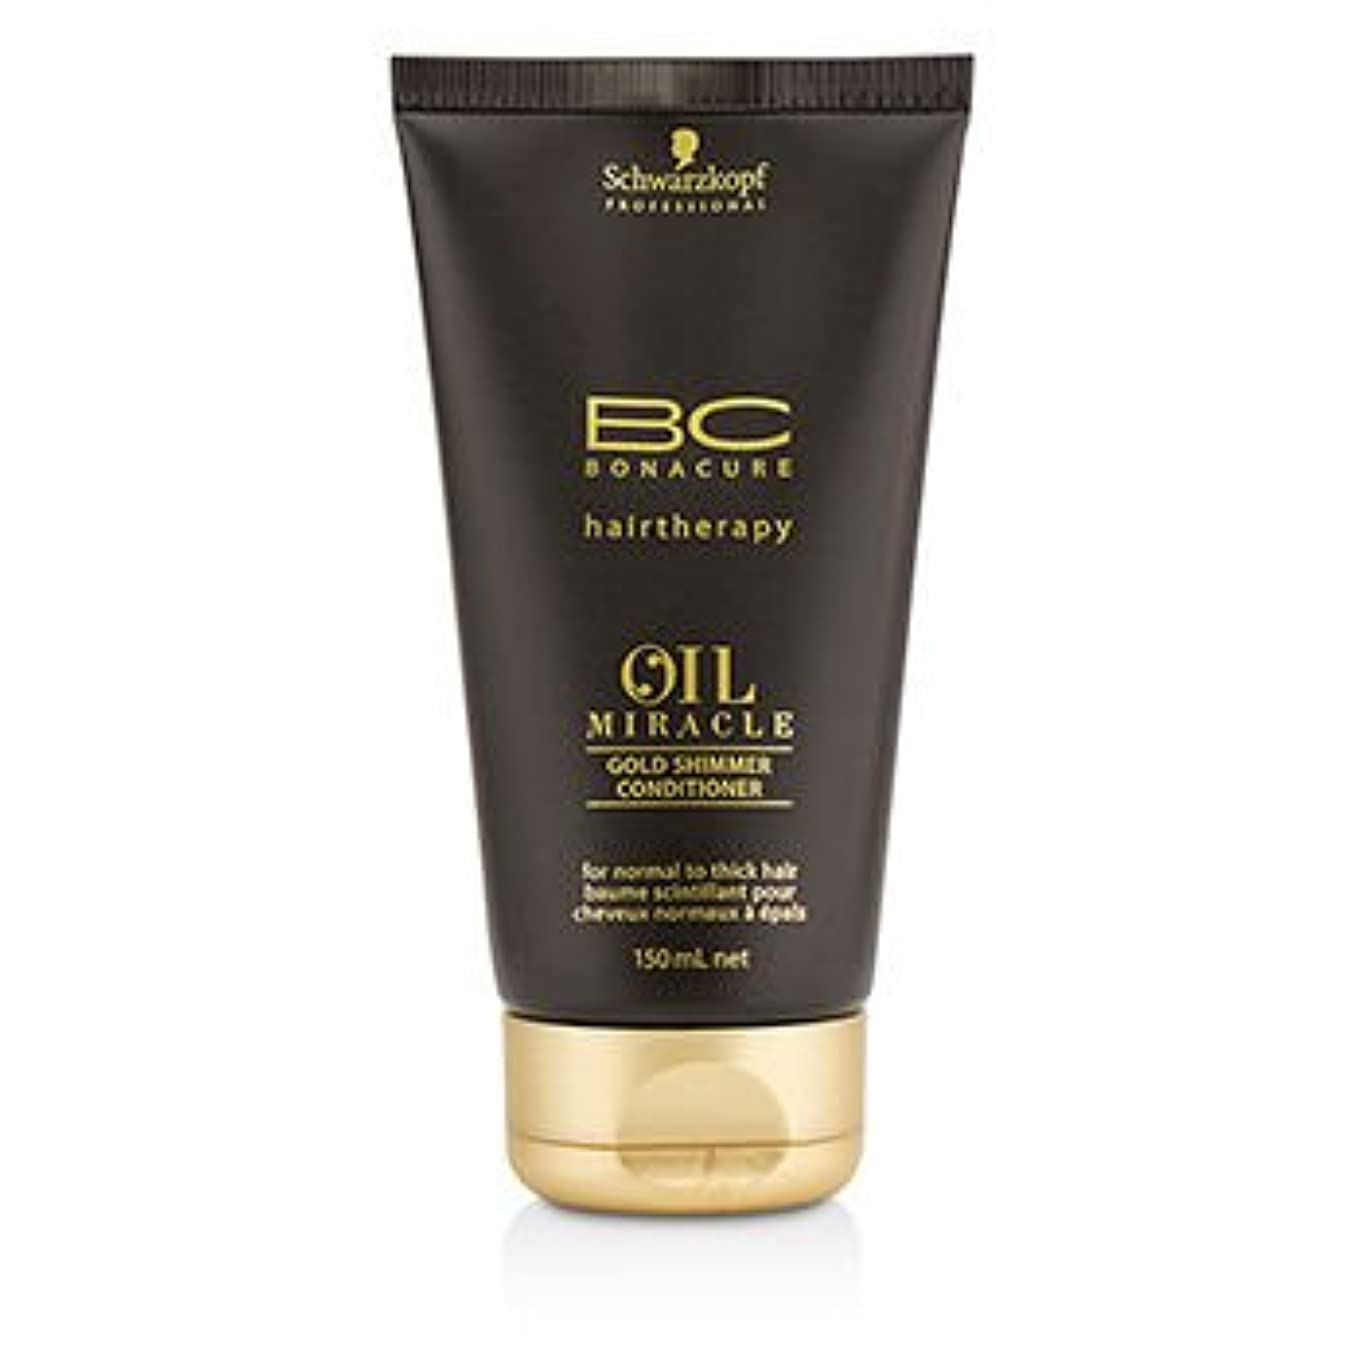 考古学的な夜の動物園吐き出す[Schwarzkopf] BC Oil Miracle Gold Shimmer Conditioner (For Normal to Thick Hair) 150ml/5oz